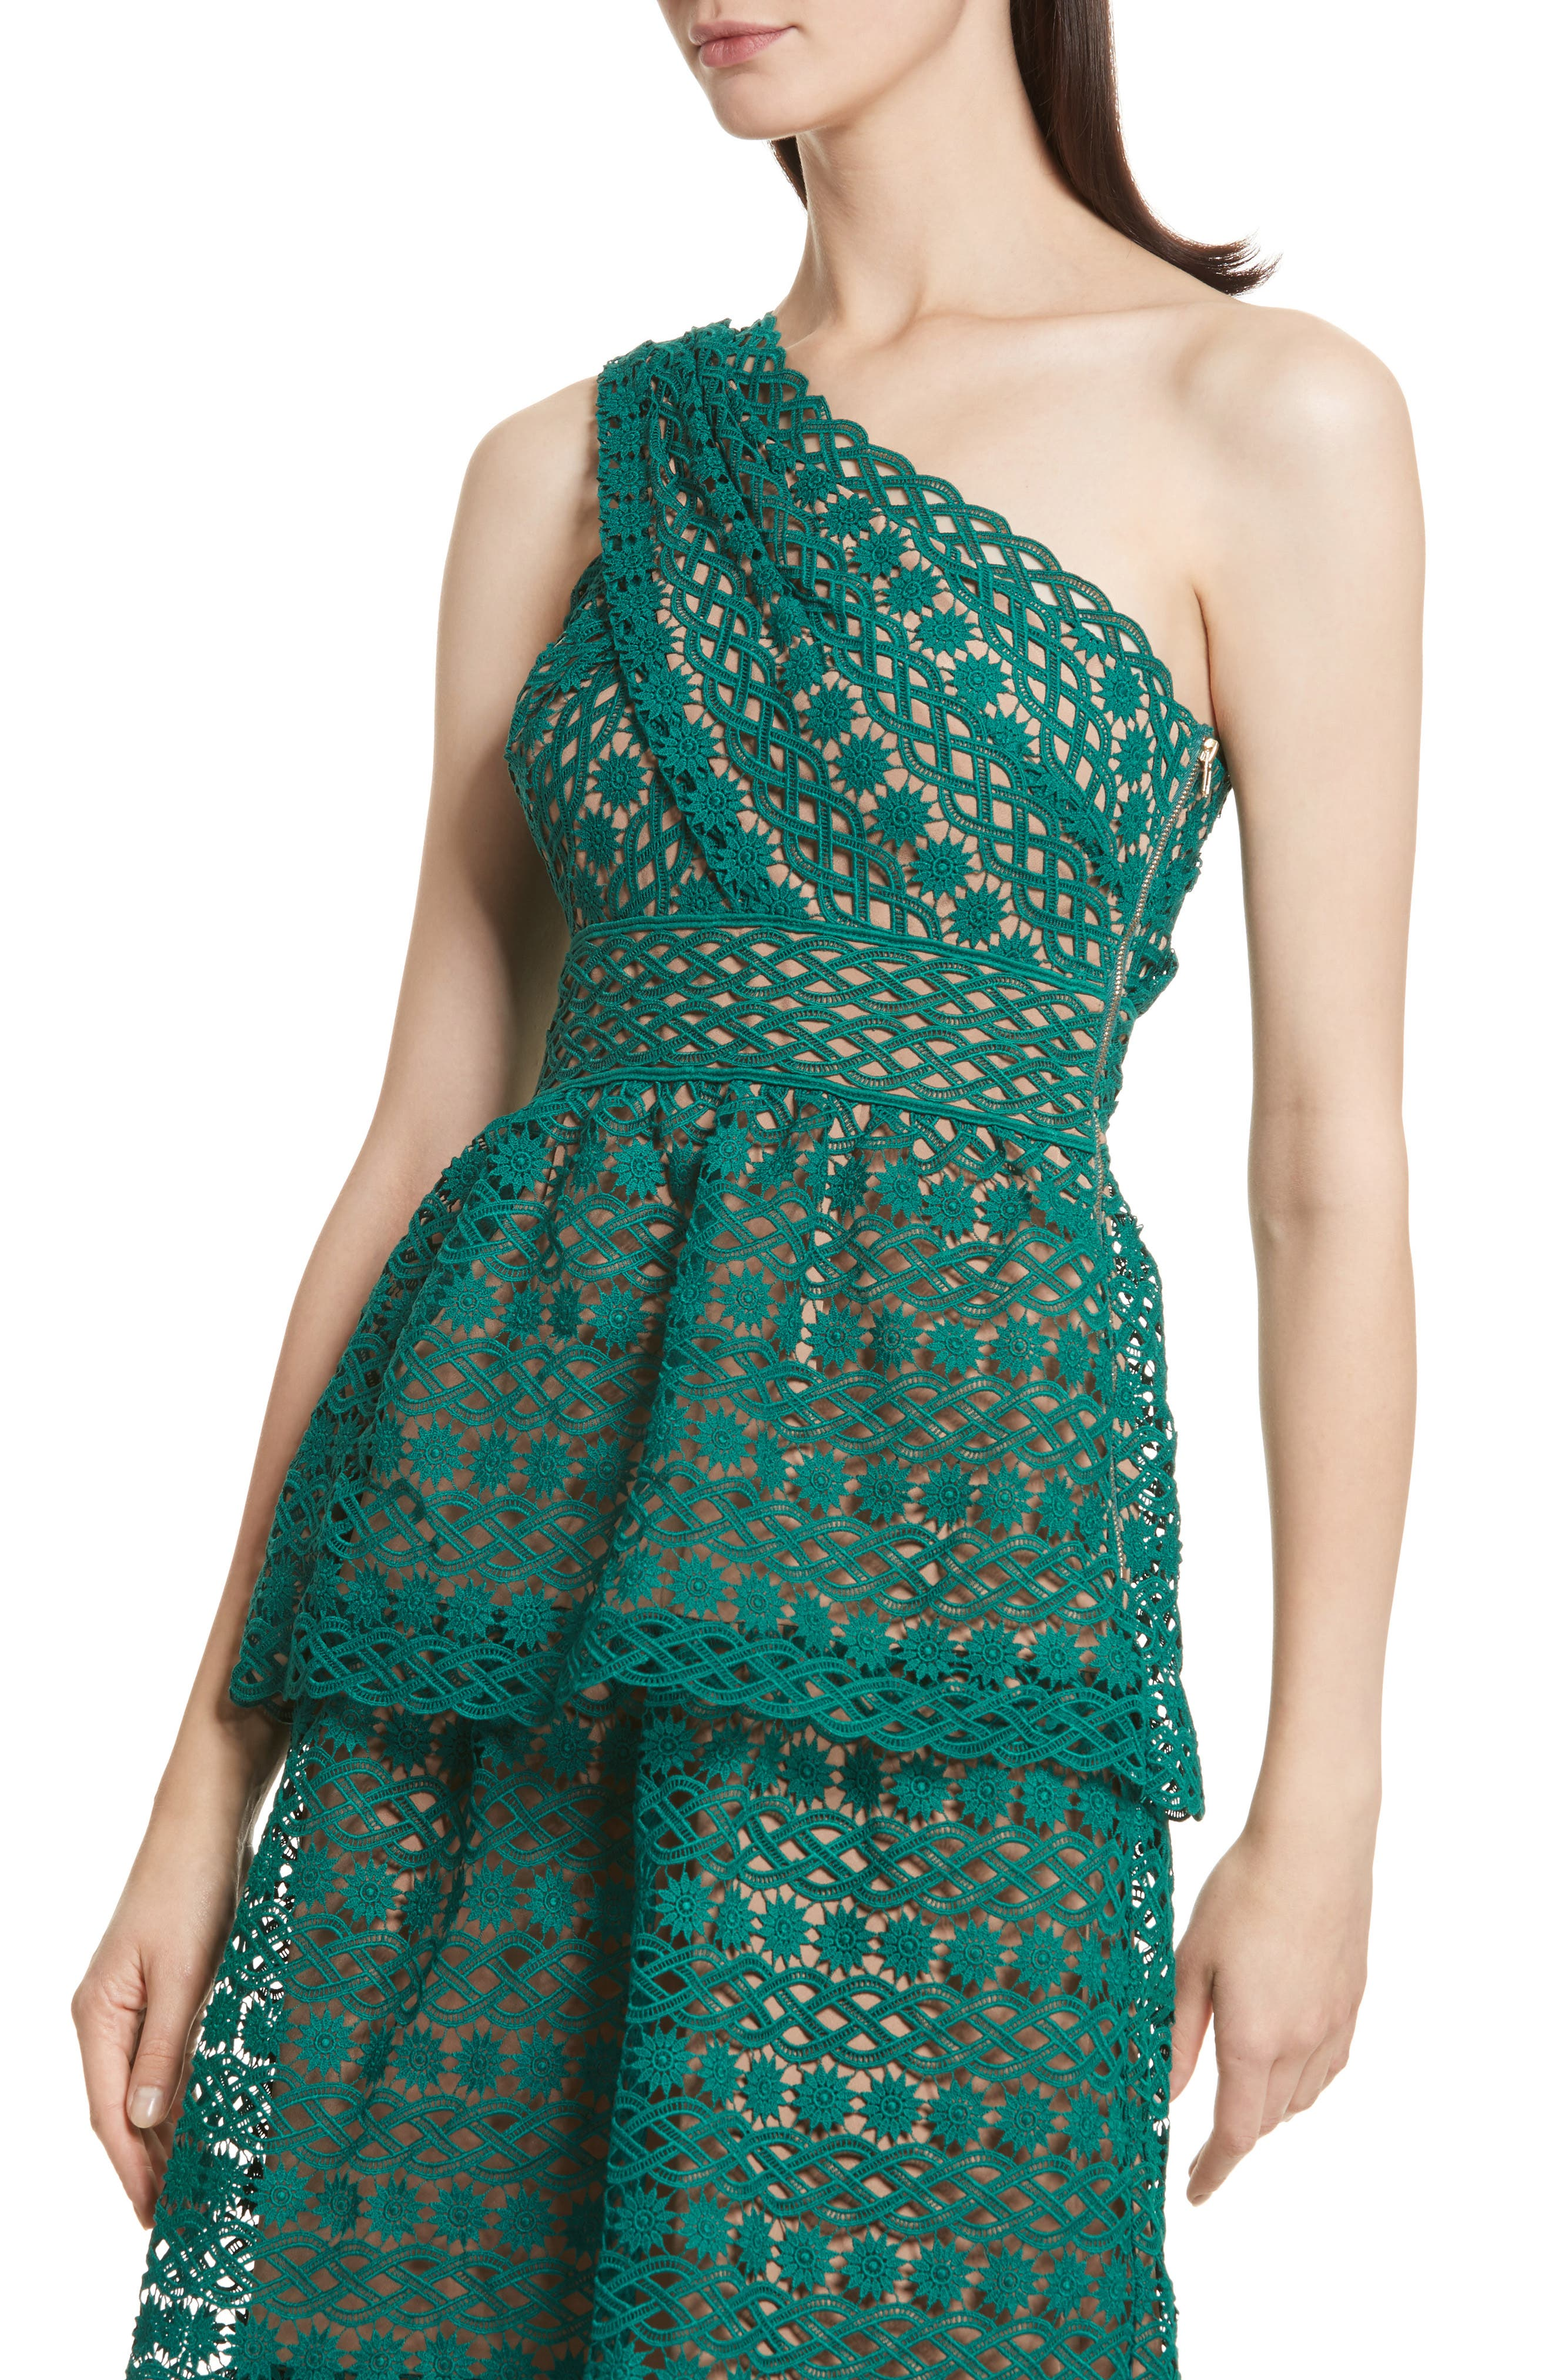 Lace One-Shoulder Midi Dress,                             Alternate thumbnail 4, color,                             Green